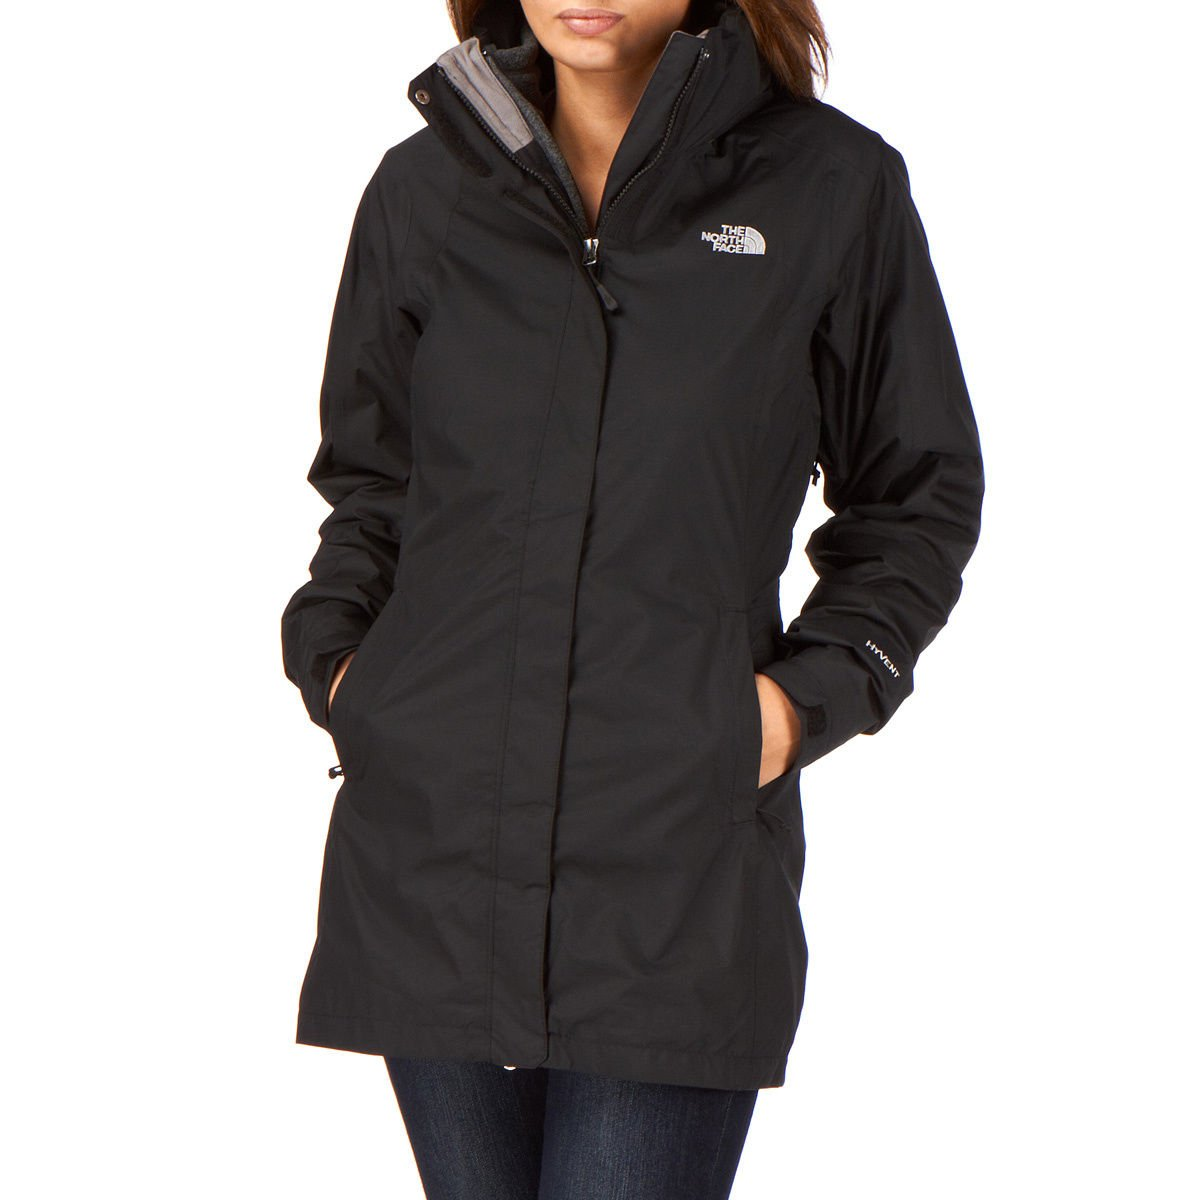 THE NORTH FACE Jacke Triton Triclimate - Chaqueta de plumas